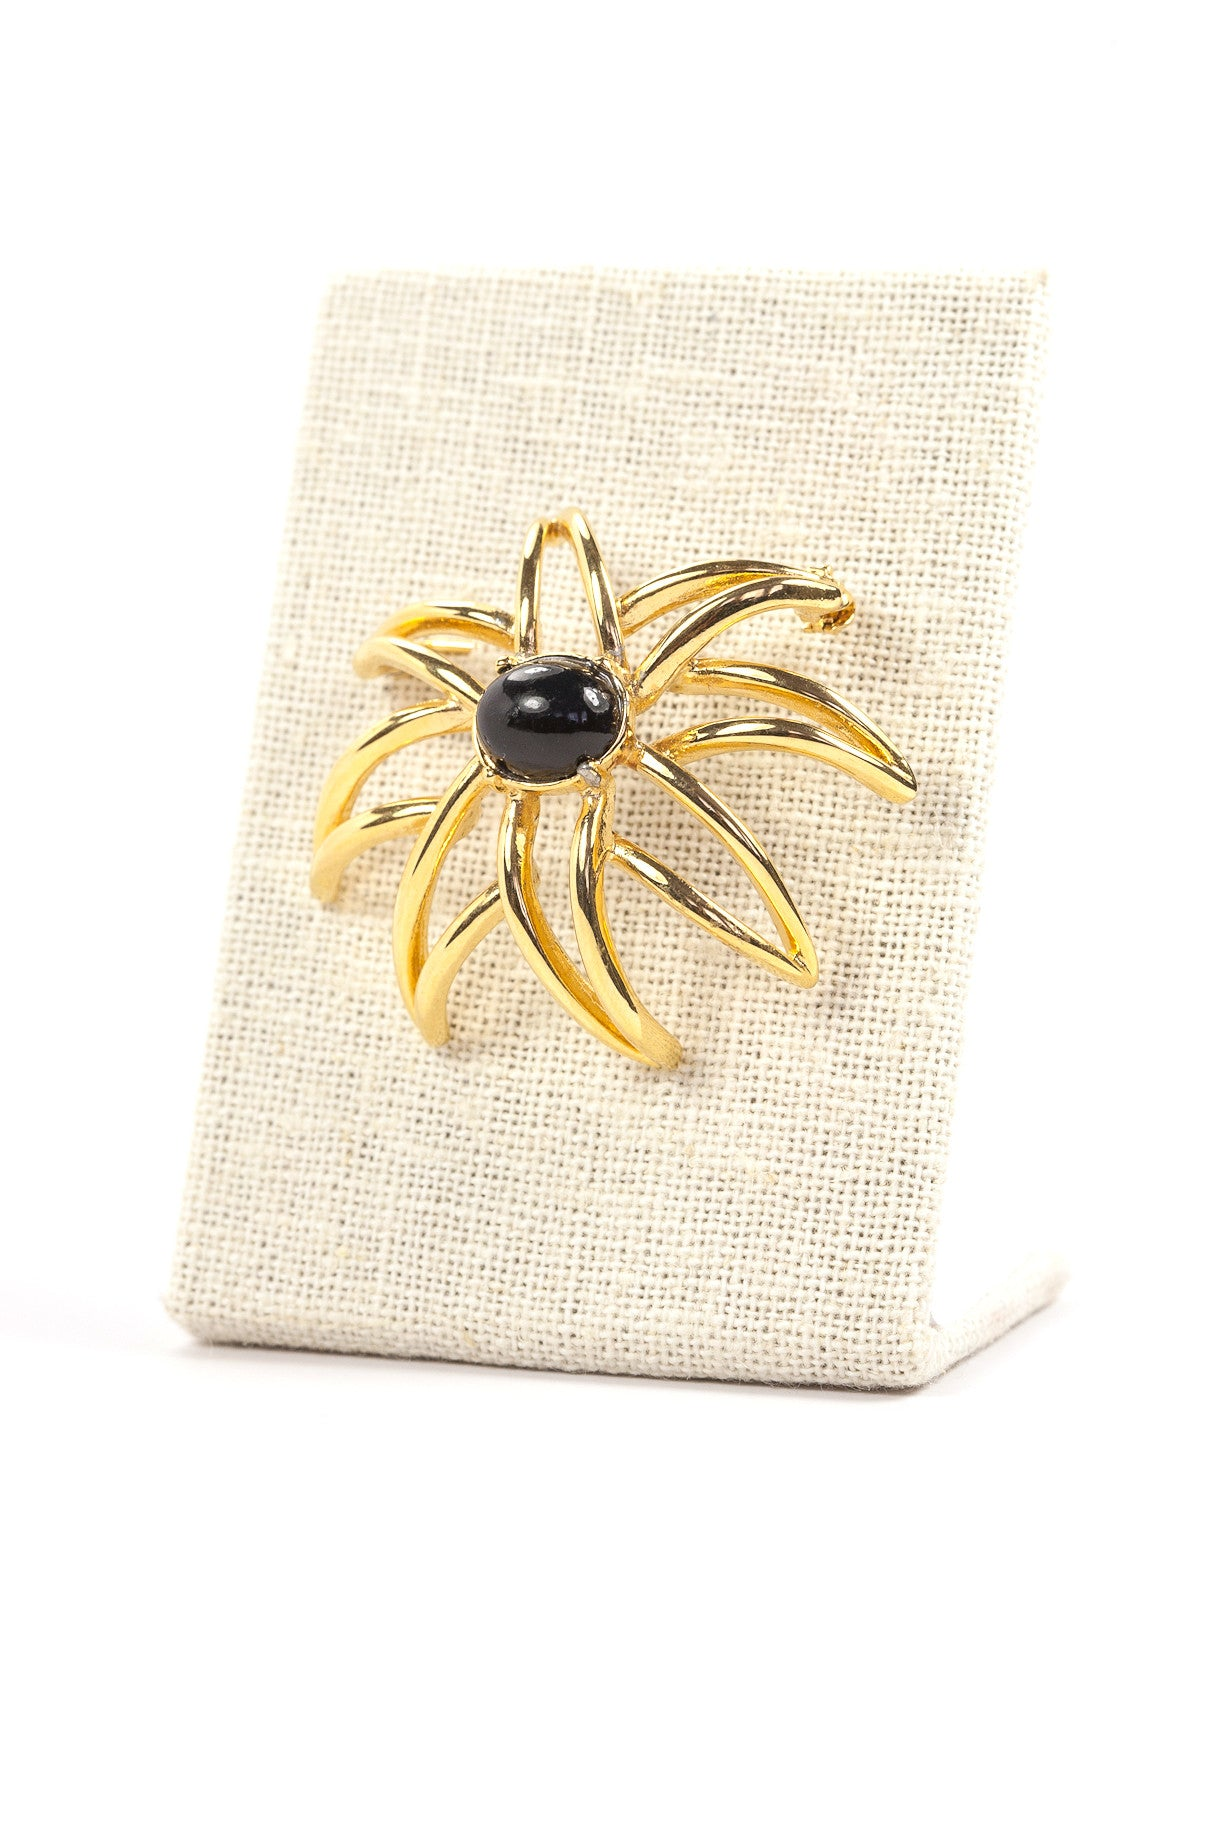 80's__Anne Klein__Burst Brooch